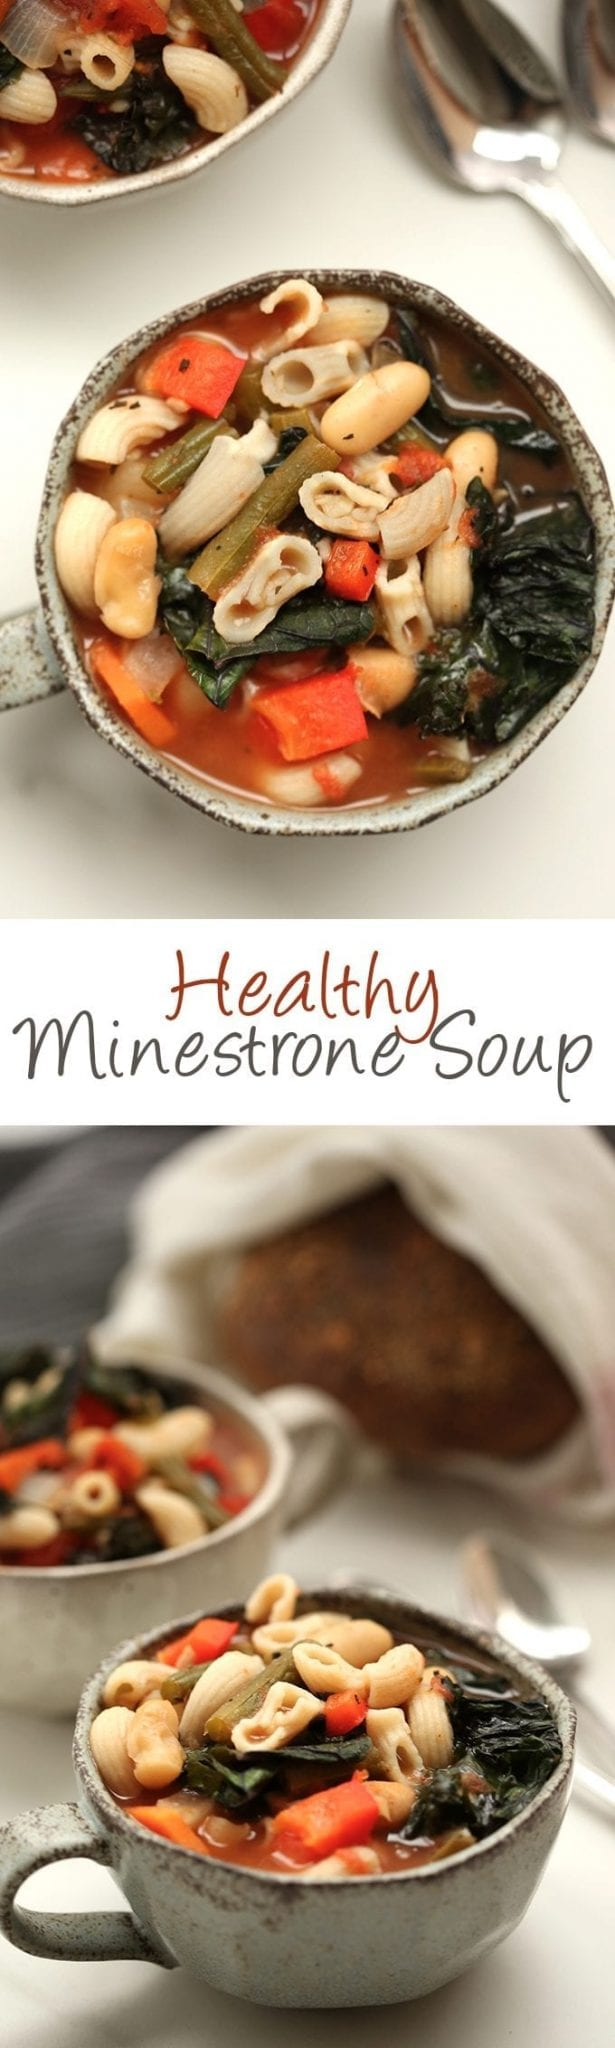 A one-pot meal, ready in 40 minutes with this Healthy Minestrone Soup! This gluten and dairy-free soup is packed-full of veggies and protein for a filling and delicious weekday lunch or dinner recipe.